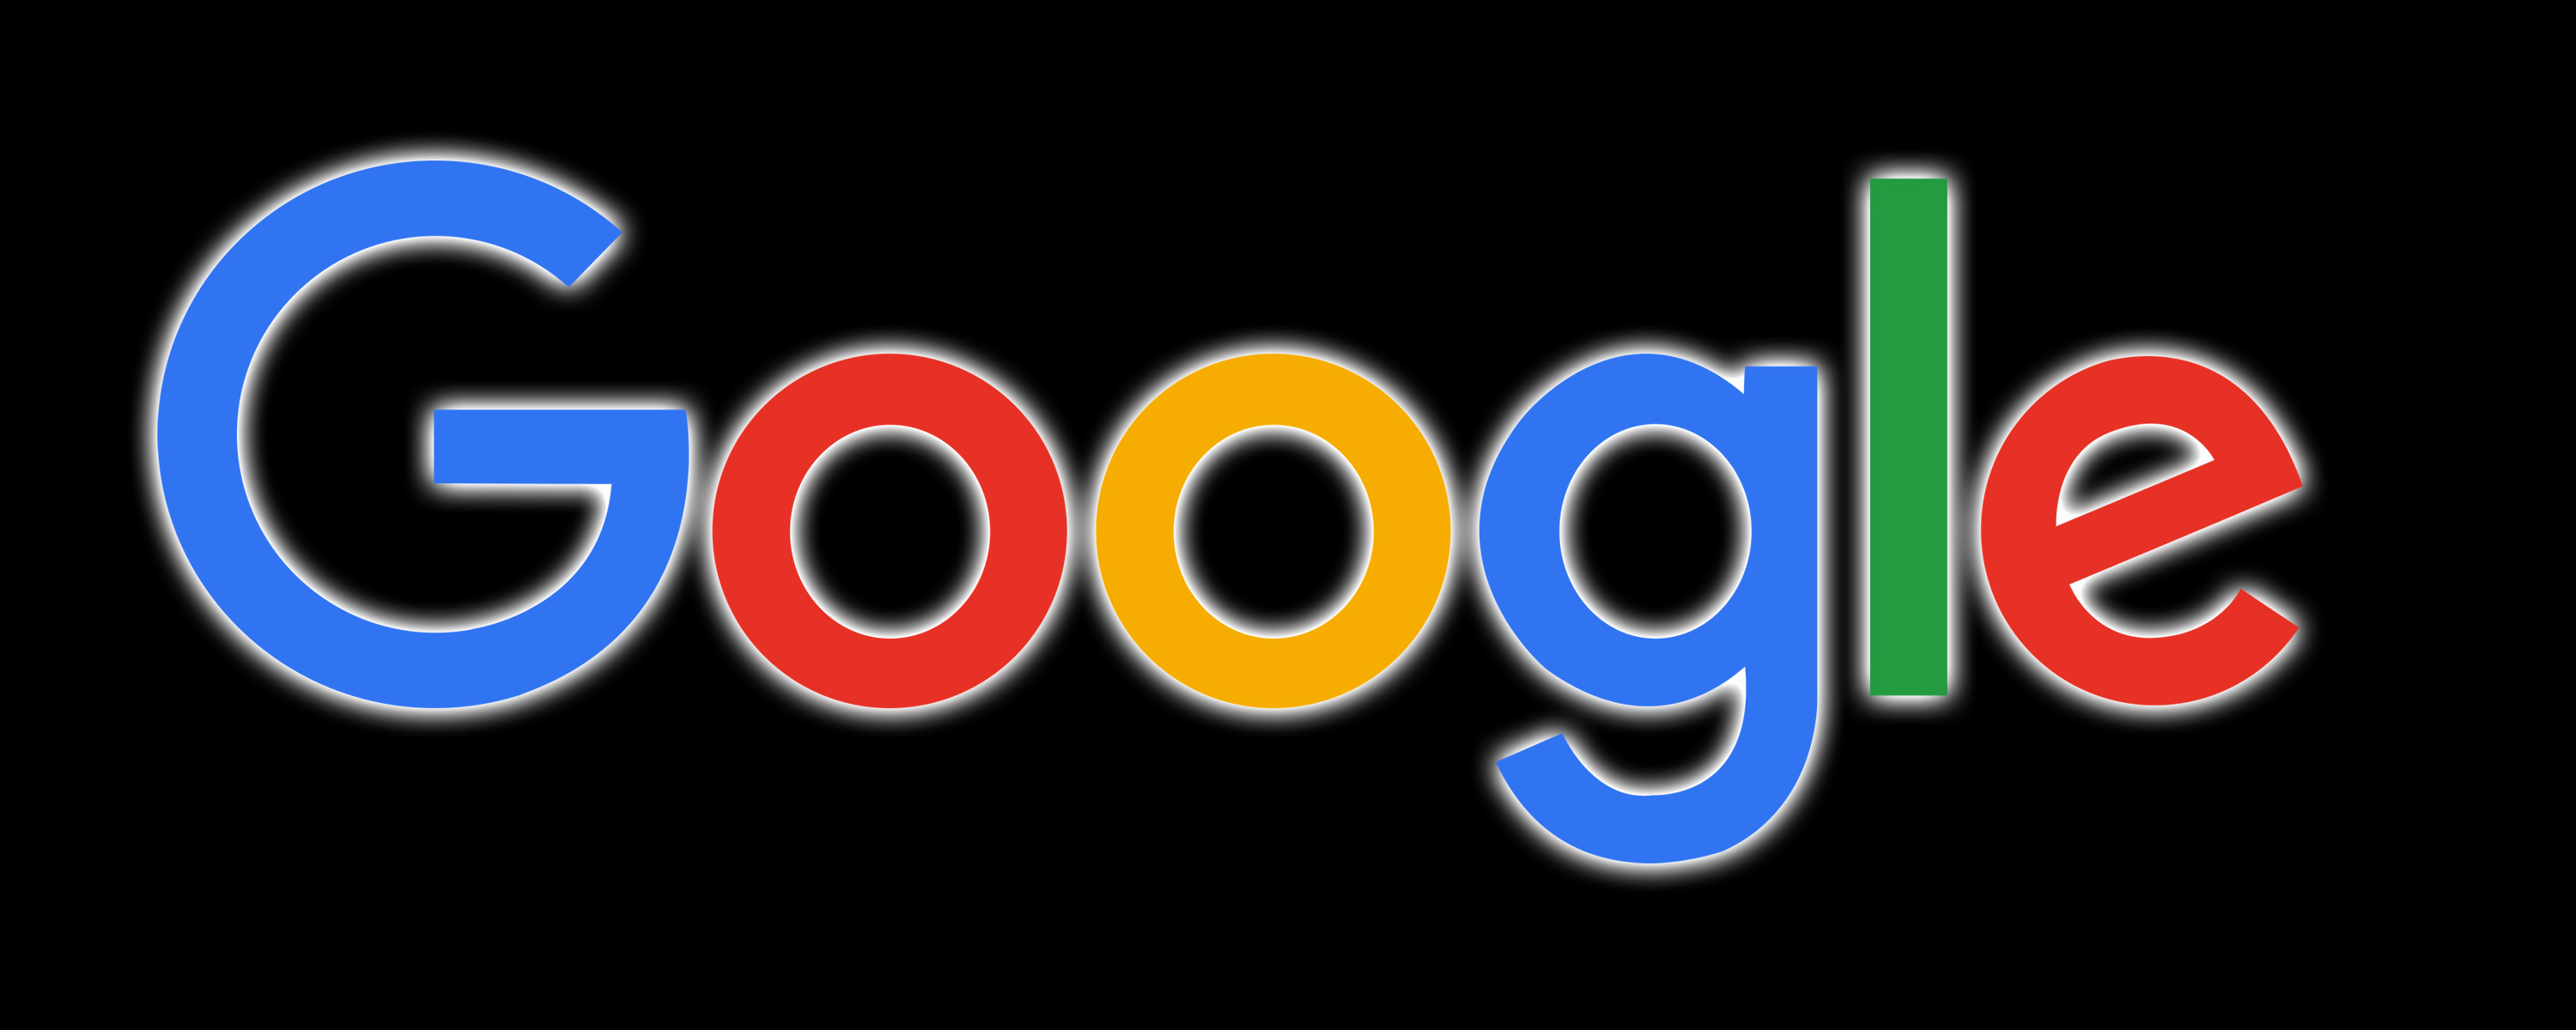 Google Logo, Google Symbol Meaning, History and Evolution